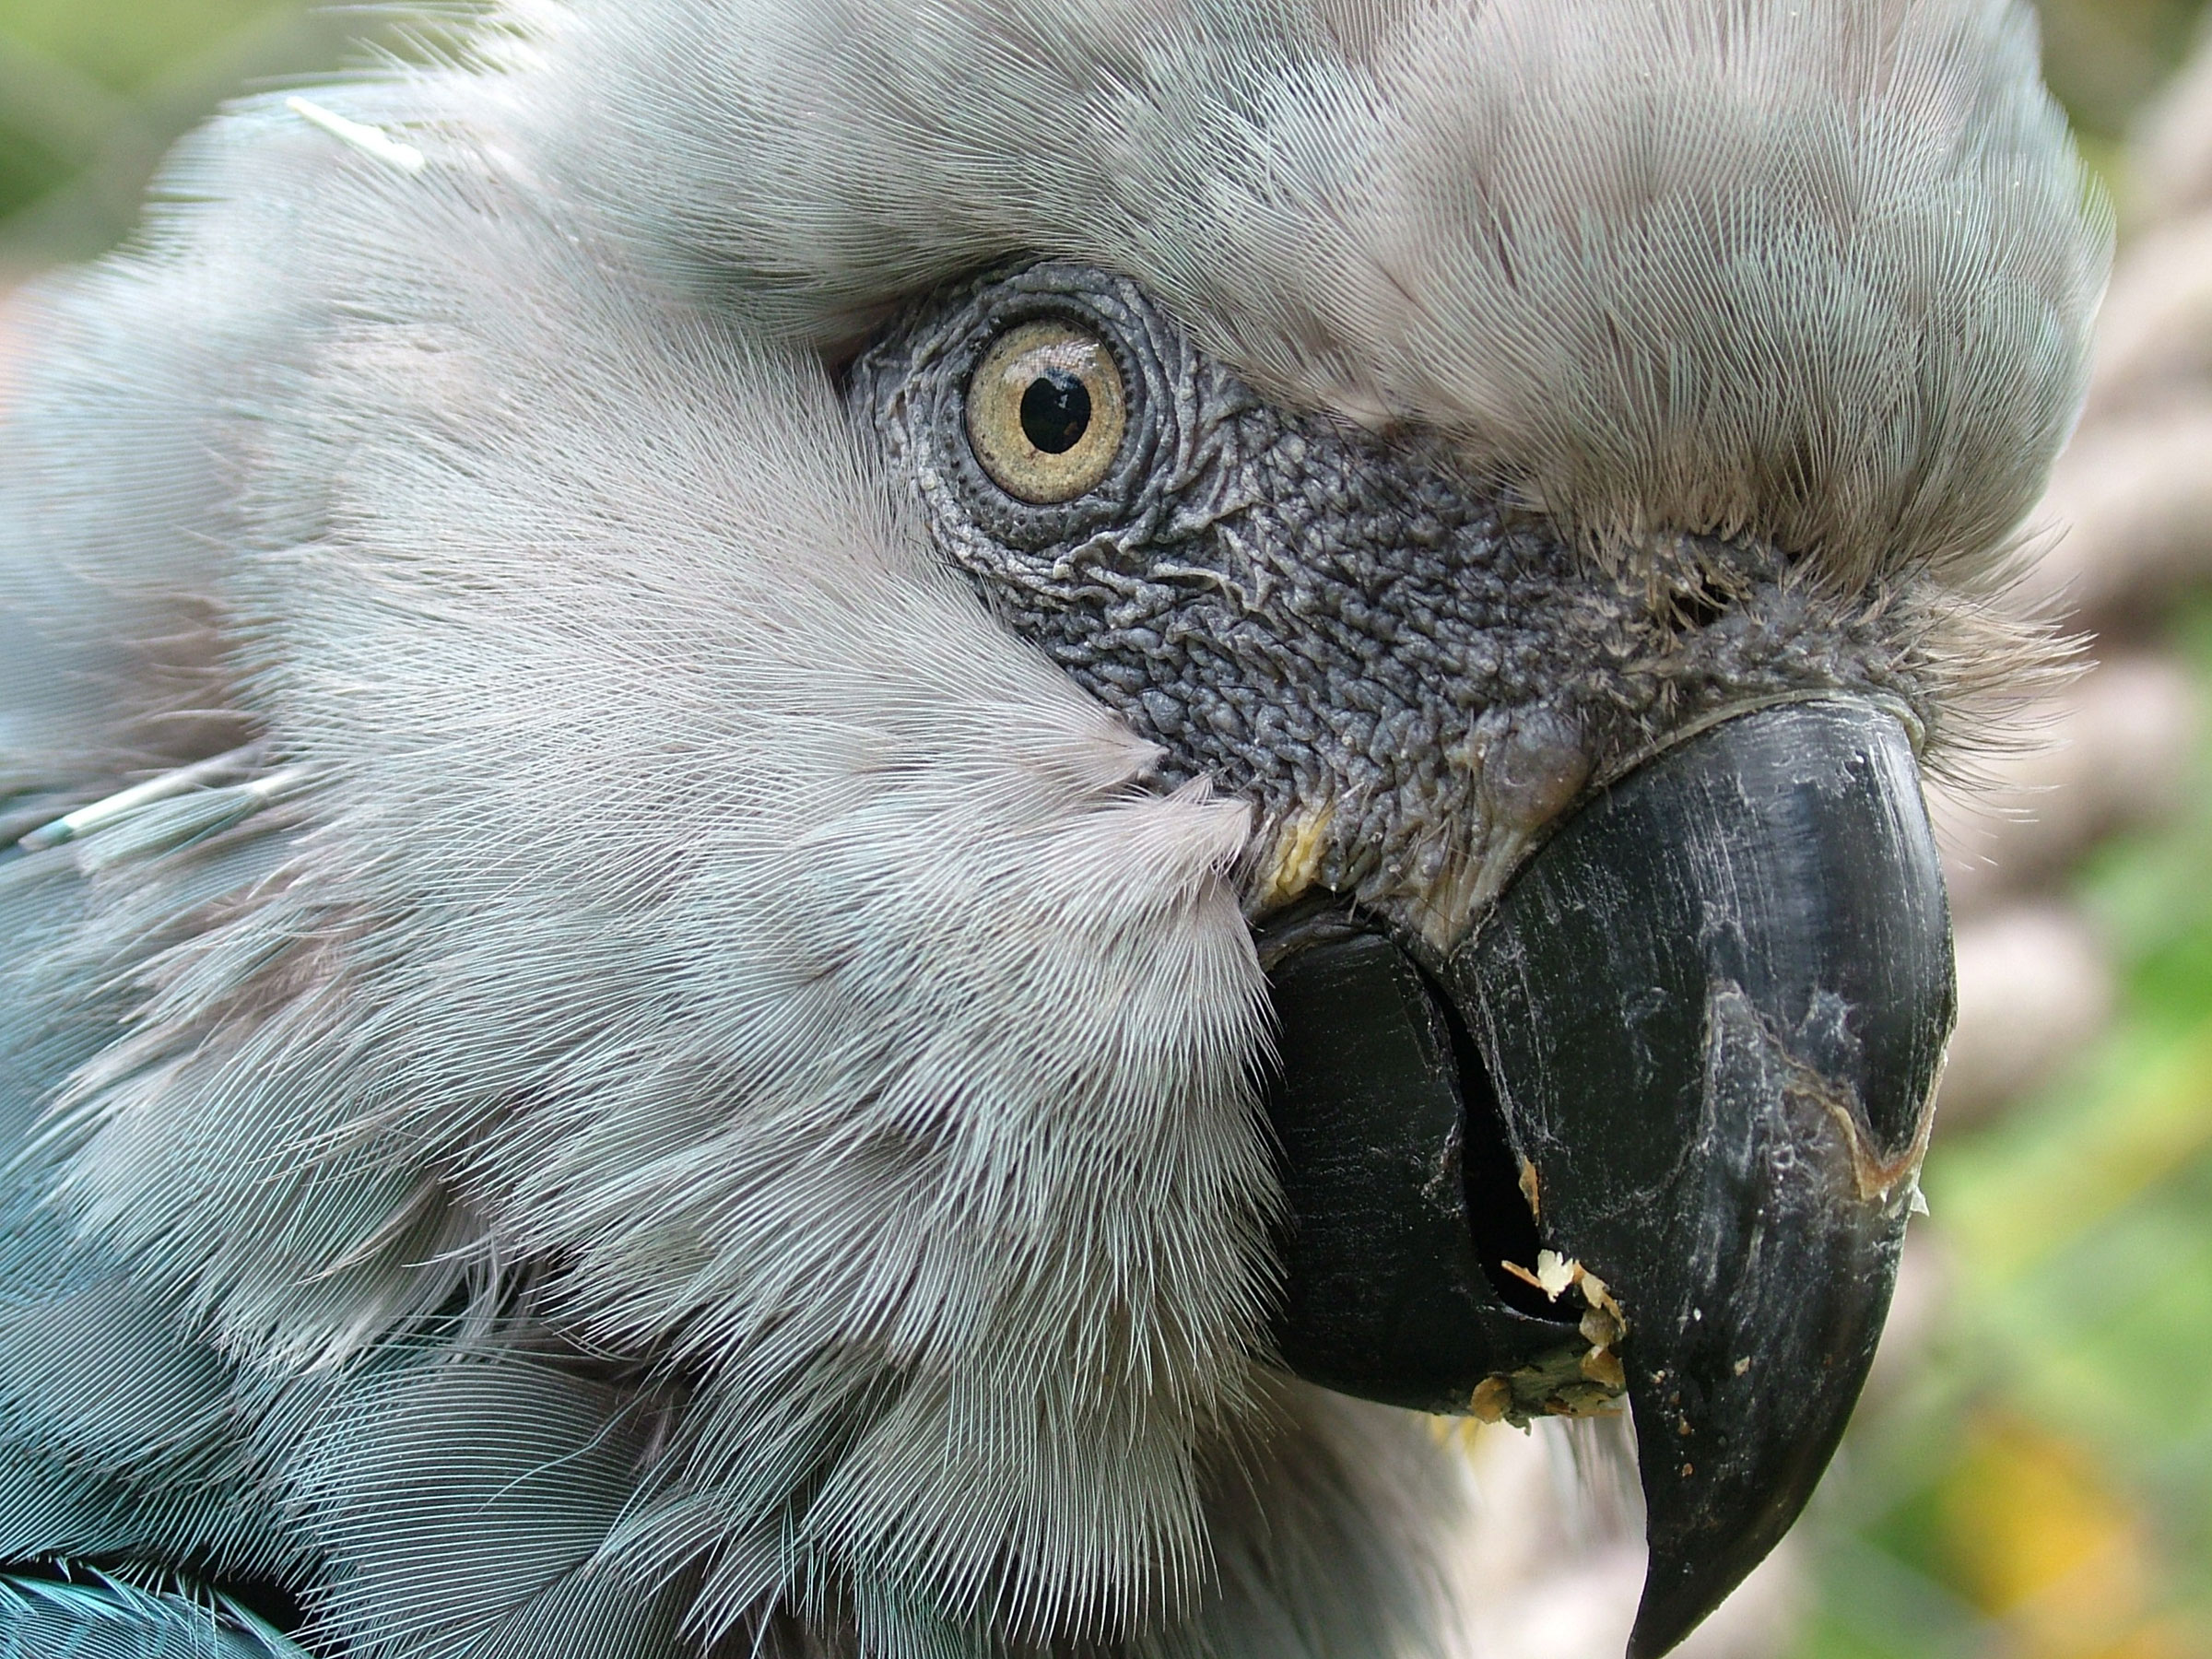 A captive Spix's Macaw named Presley emerged in Denver, Colorado, in 2002. Lymington Foundation